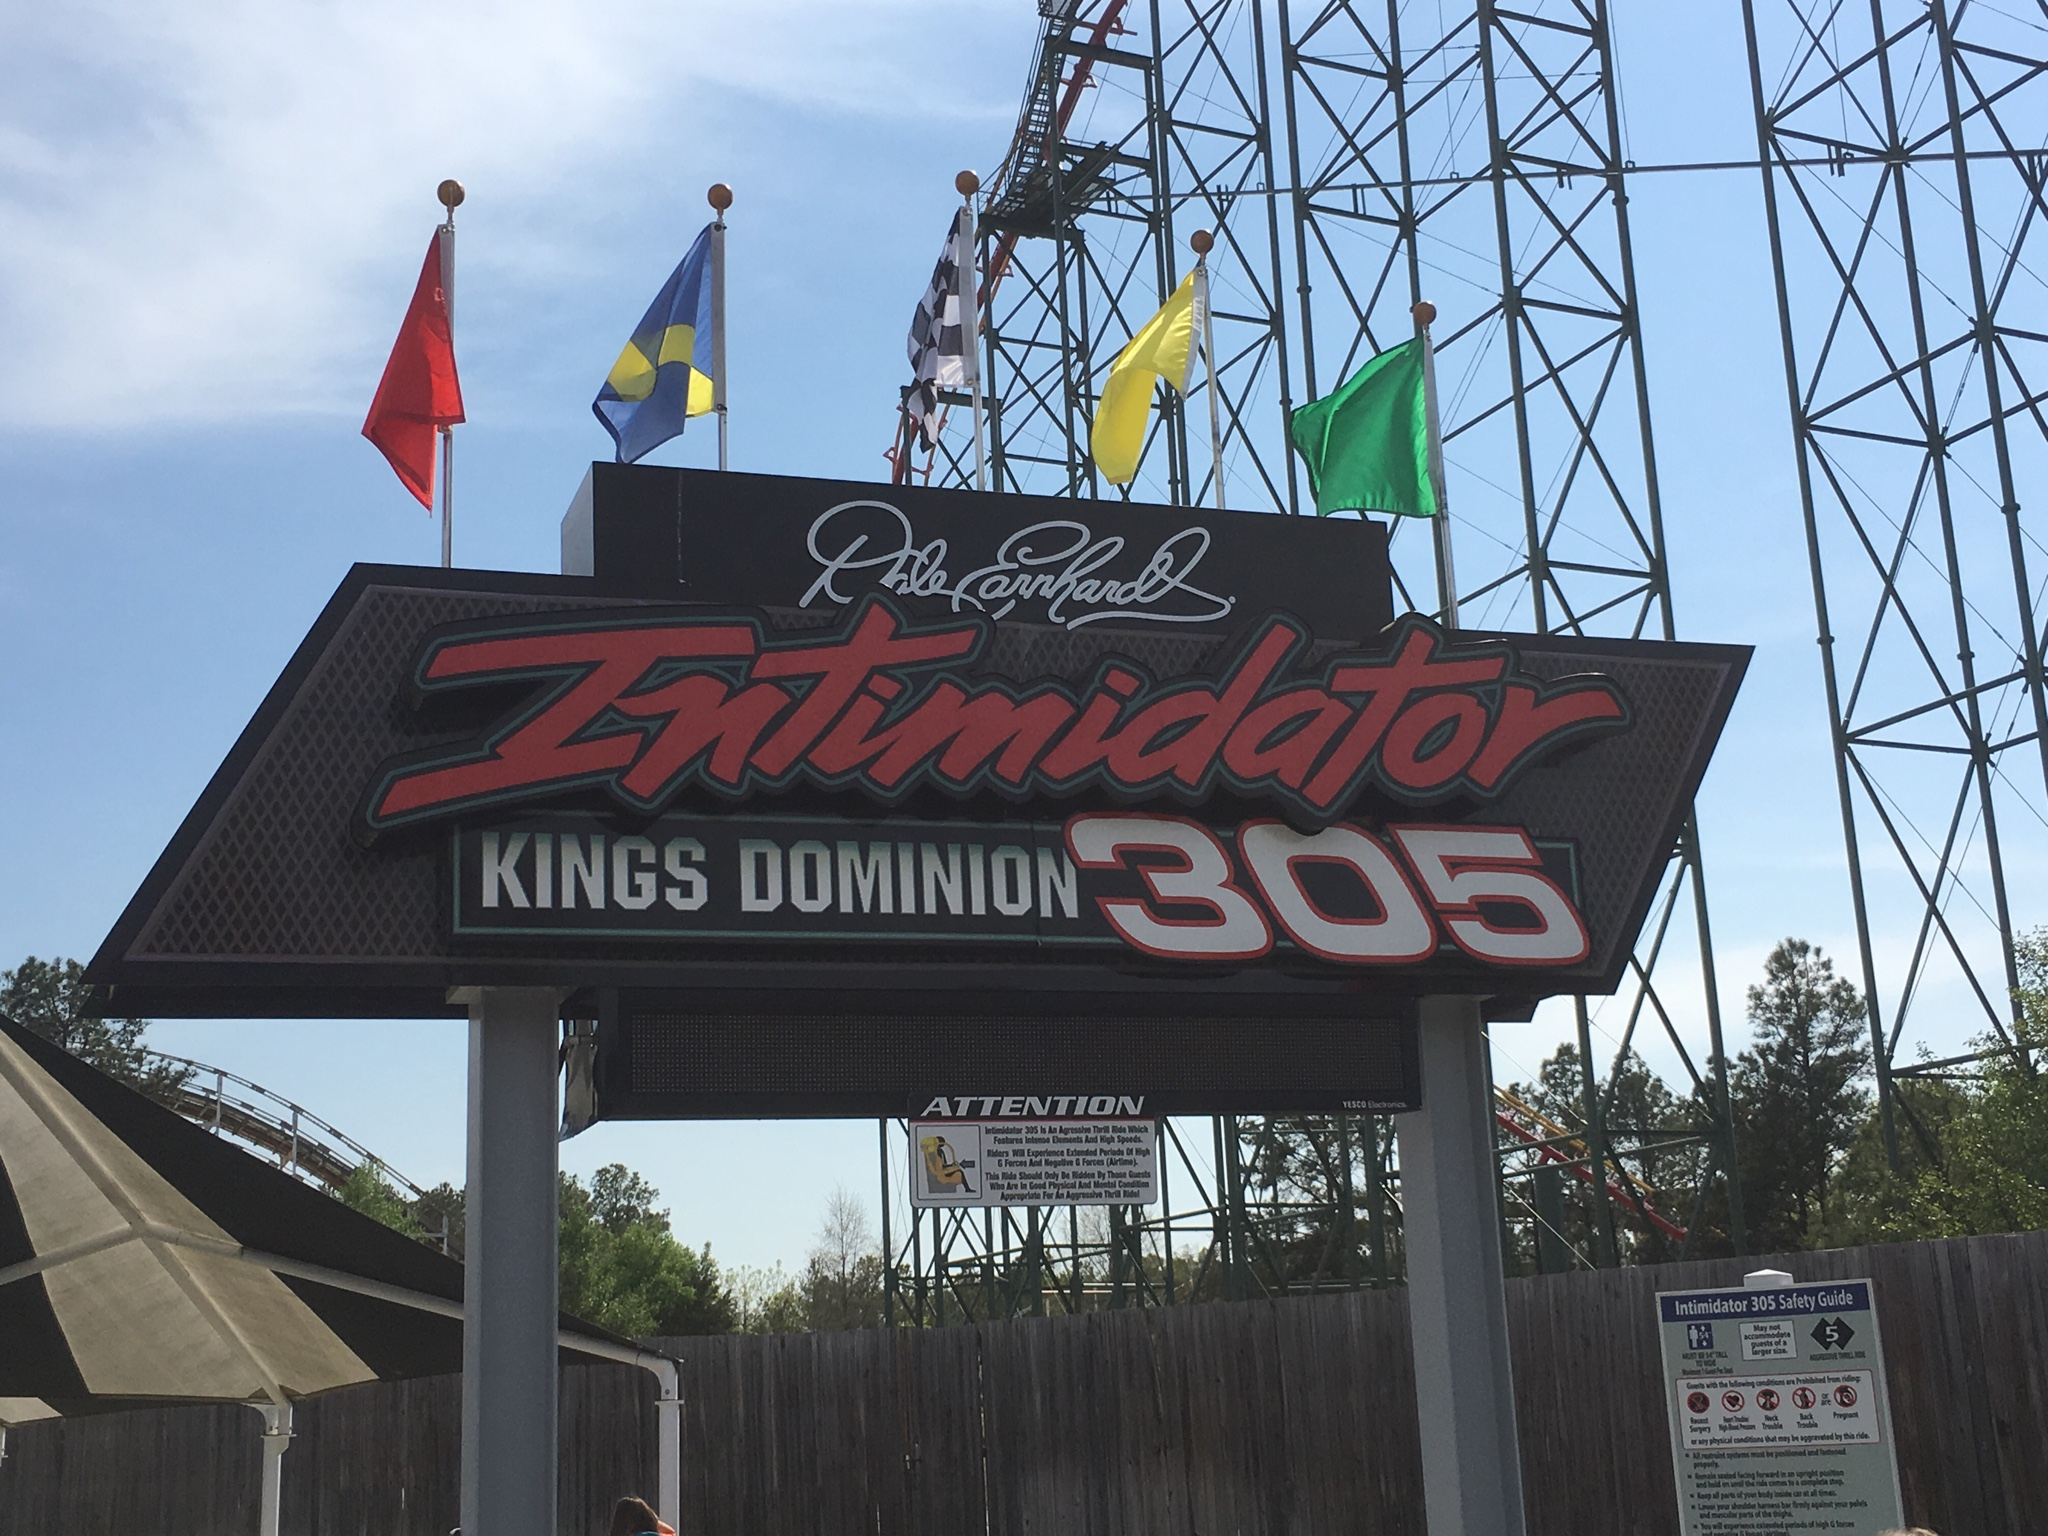 Intimidator 305 Giga-coaster at Kings Dominion | Diecast CraZy